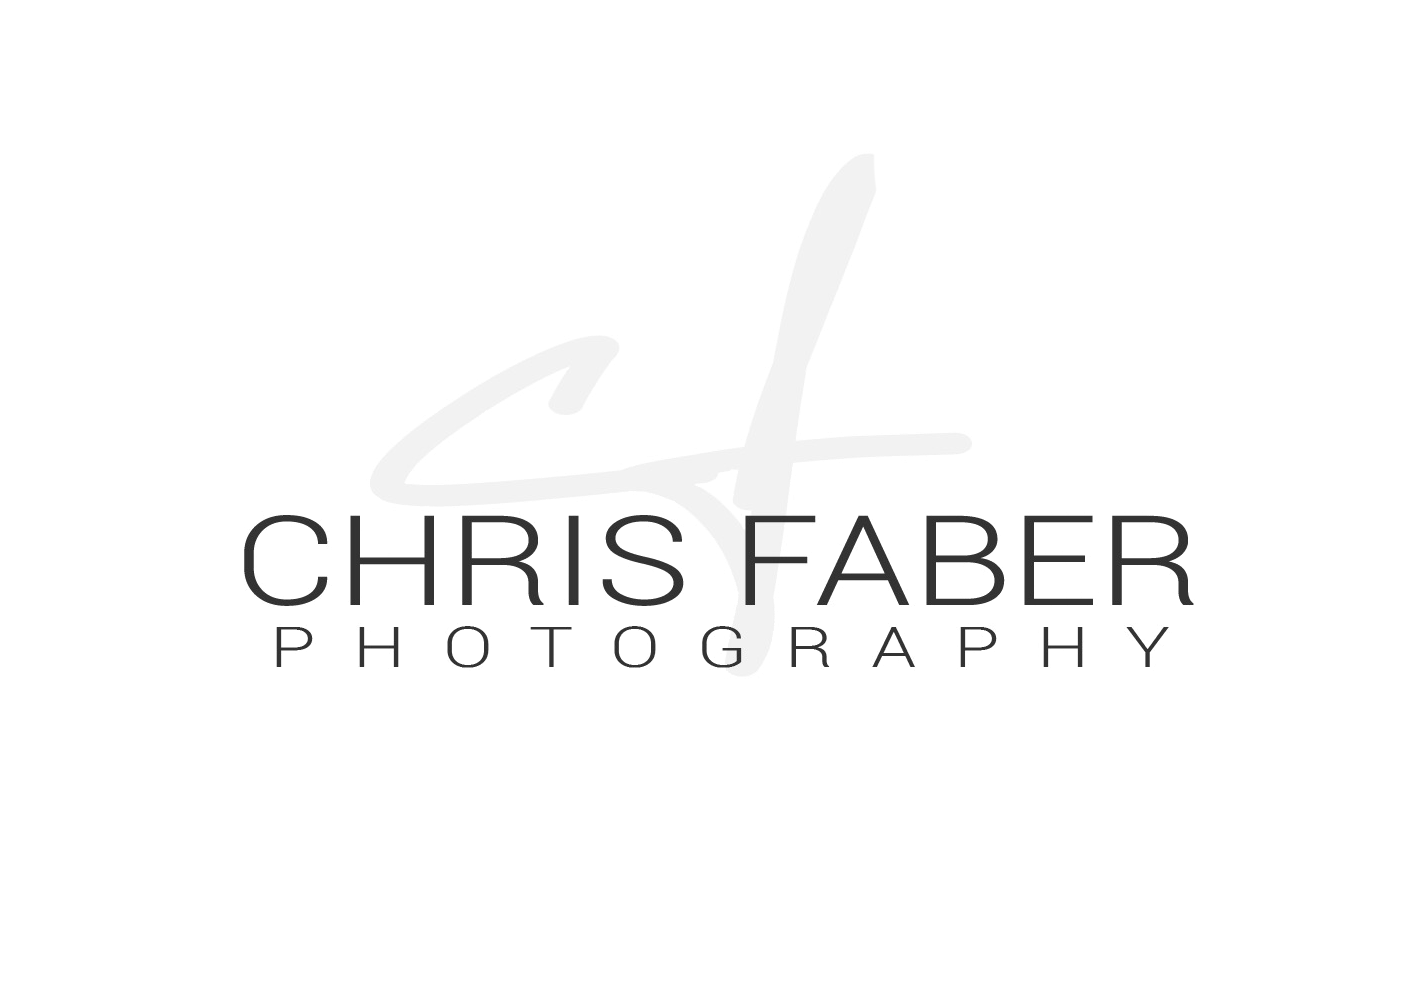 Chris Faber Photography